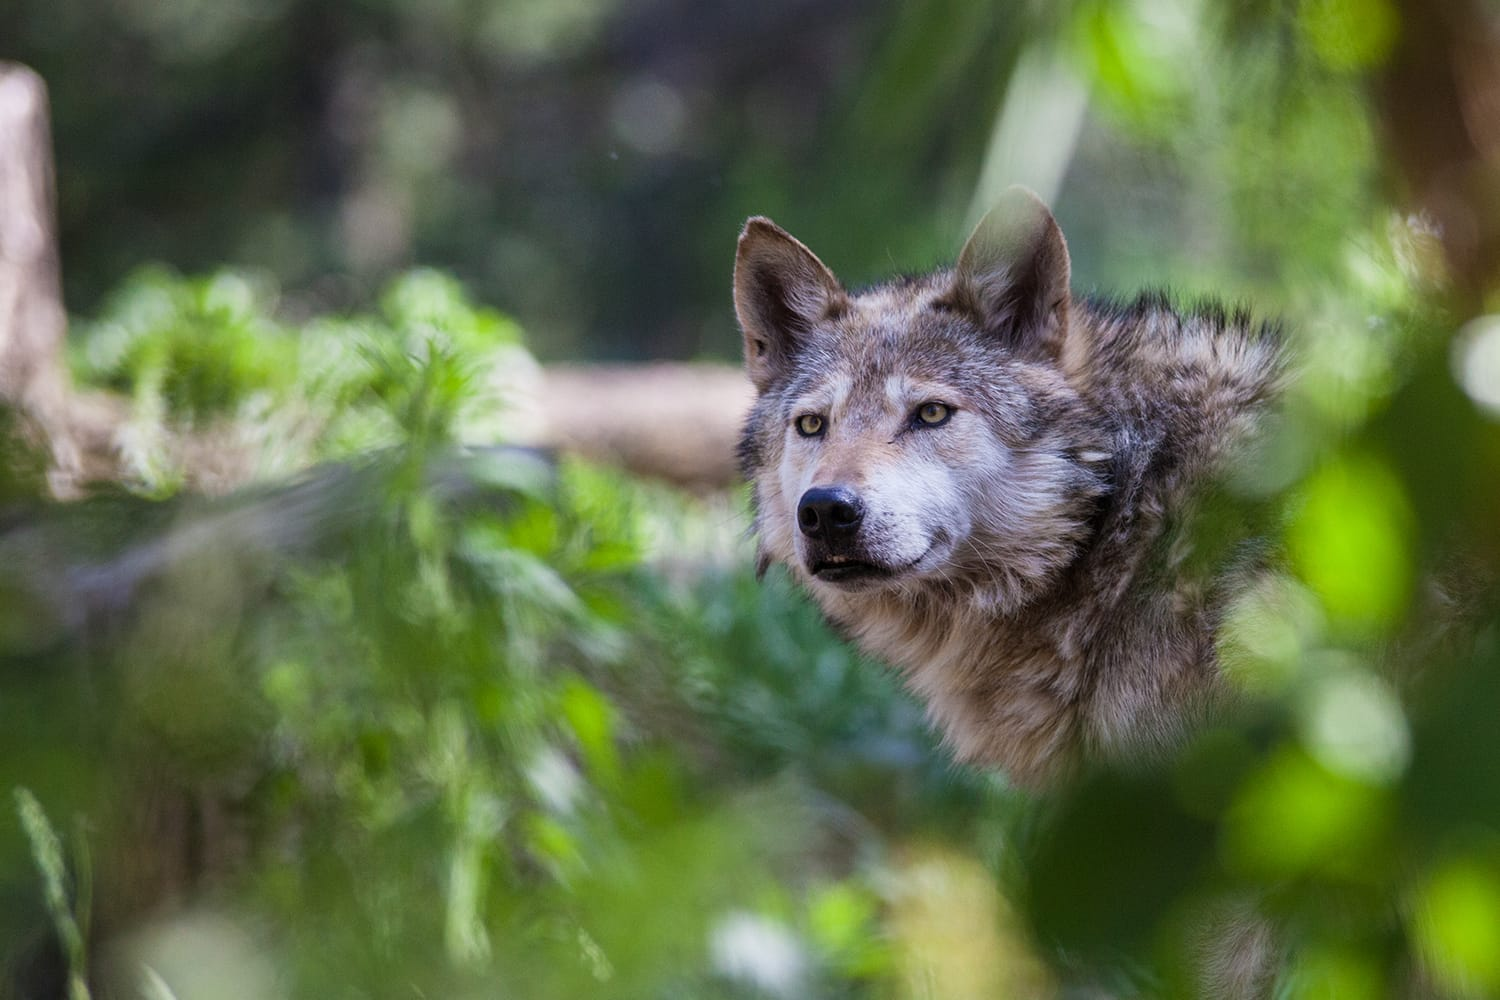 Mexican wolf at Cheyenne Mountain Zoo in Colorado, USA